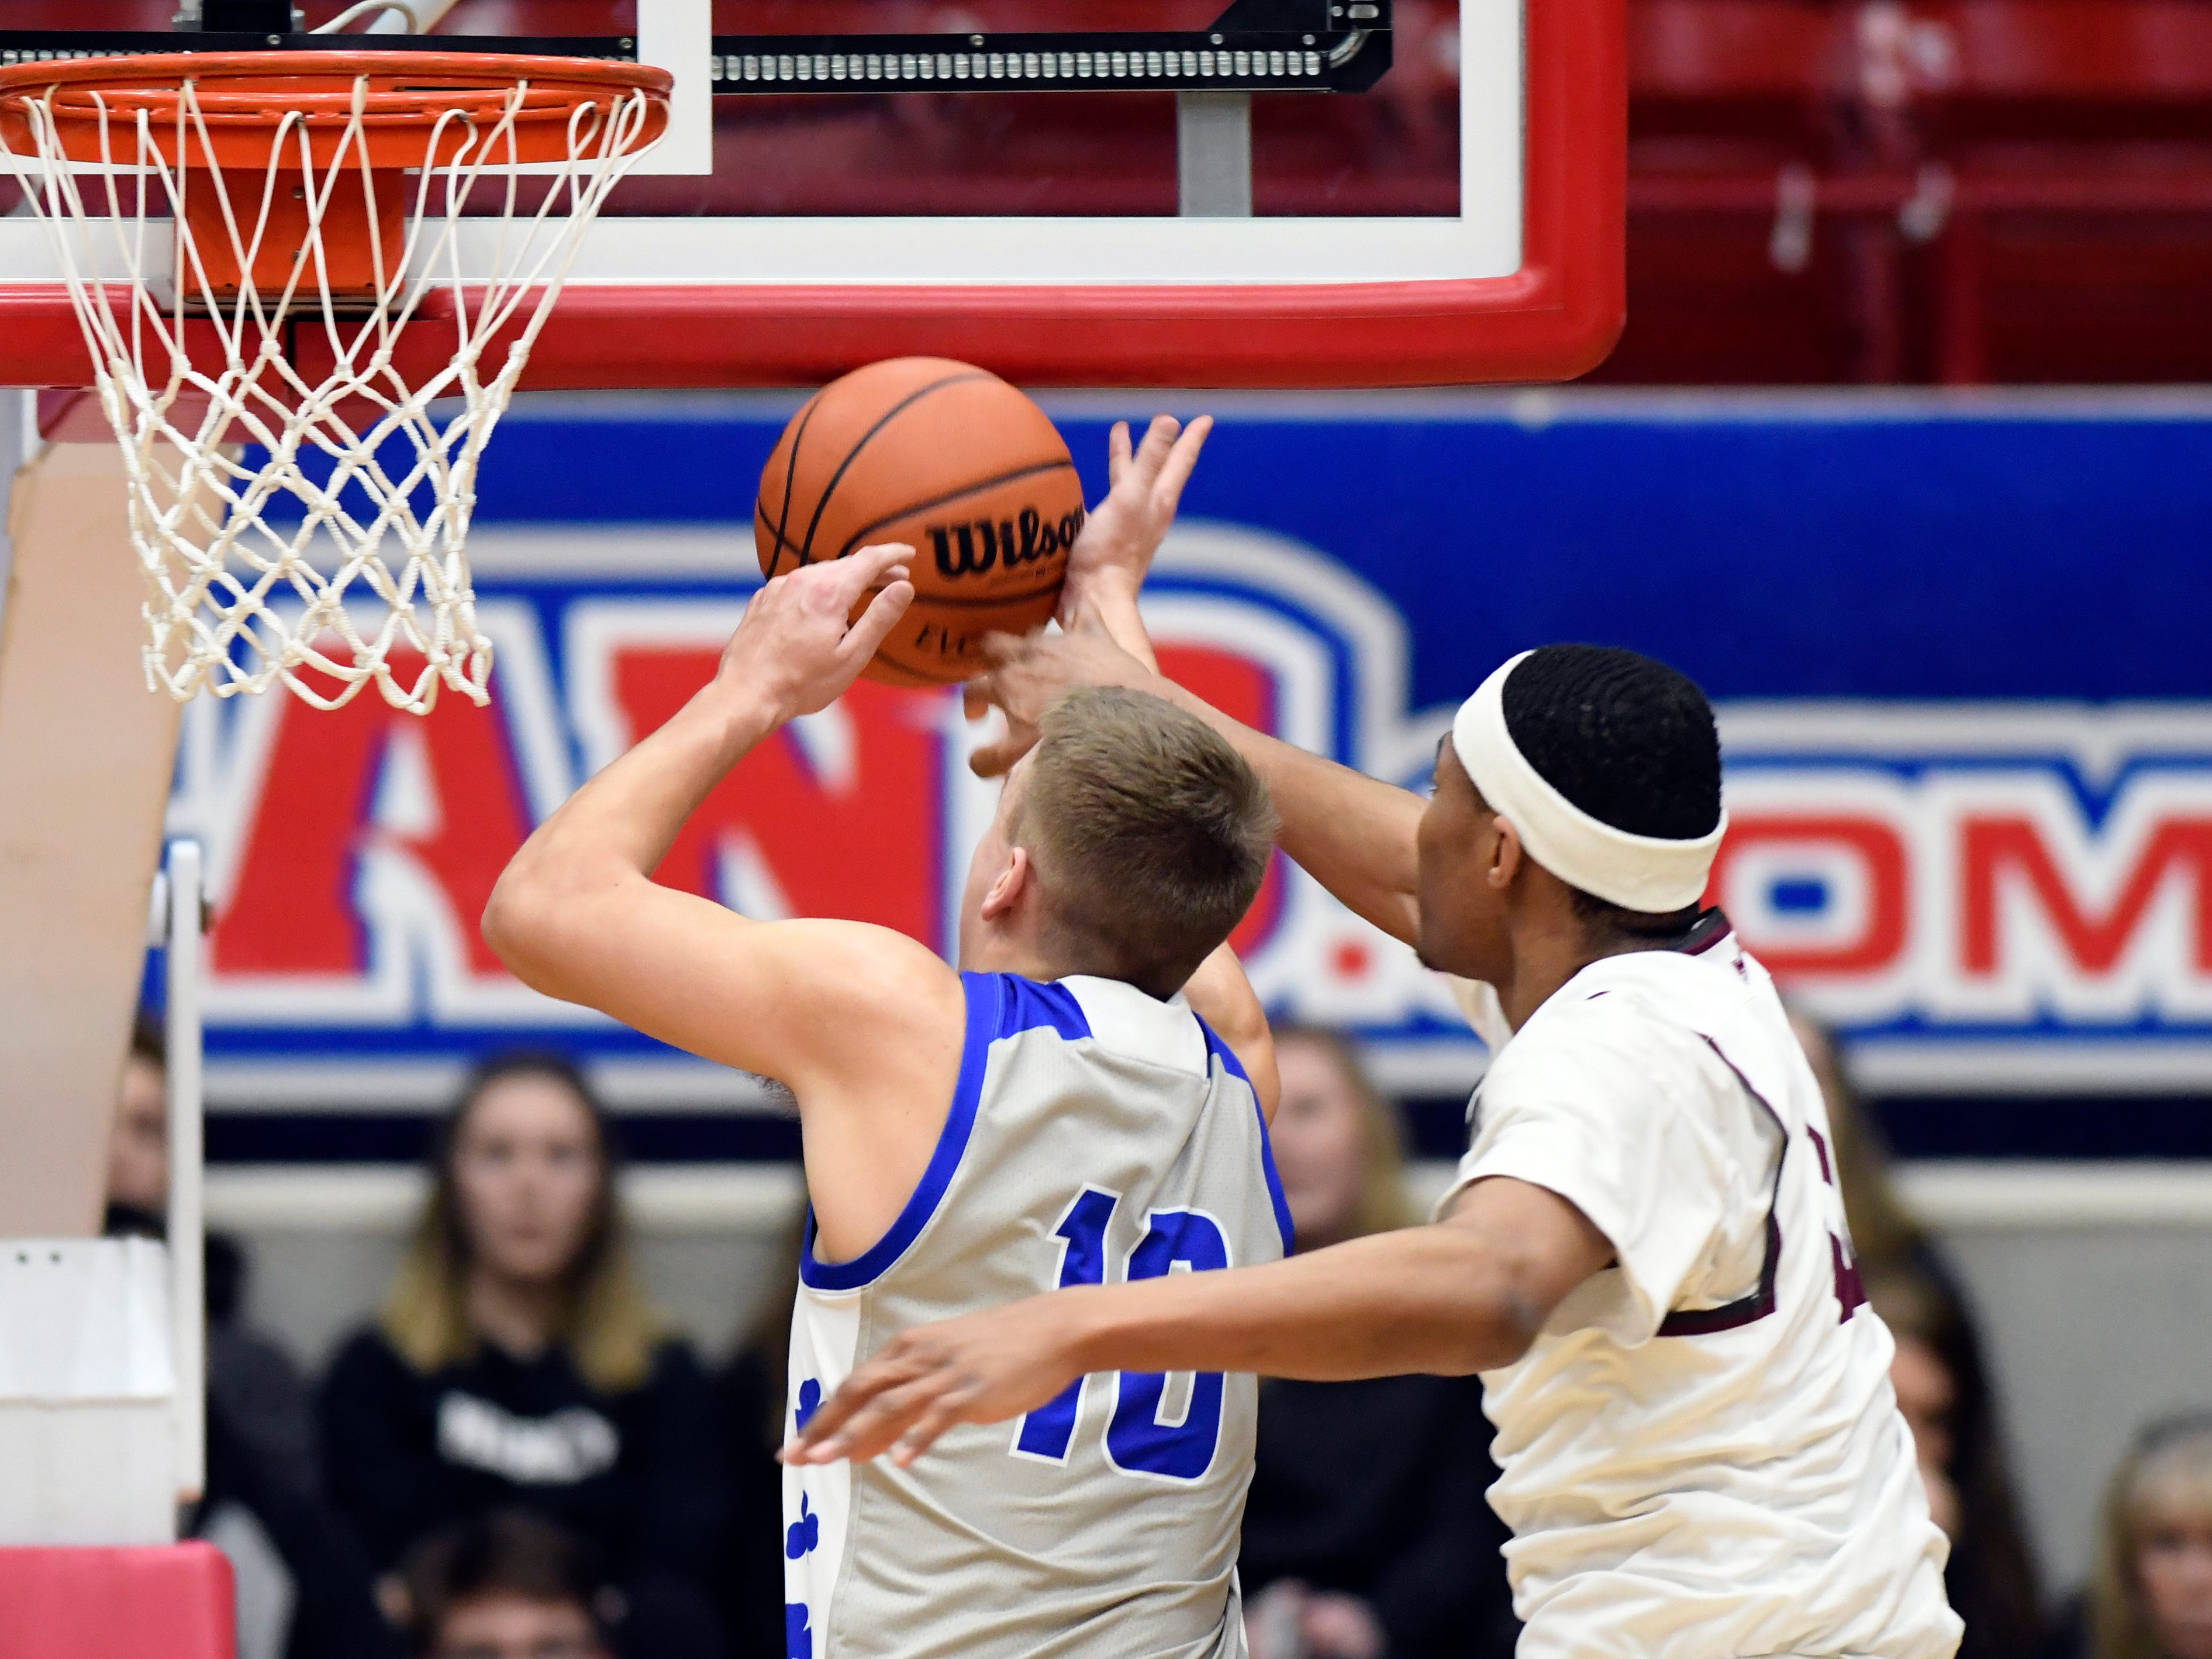 U. of D Jesuit forward Jalen Thomas (11), right, knocks the ball away from Detroit Catholic Central's Mike Harding (10) during the first quarter.